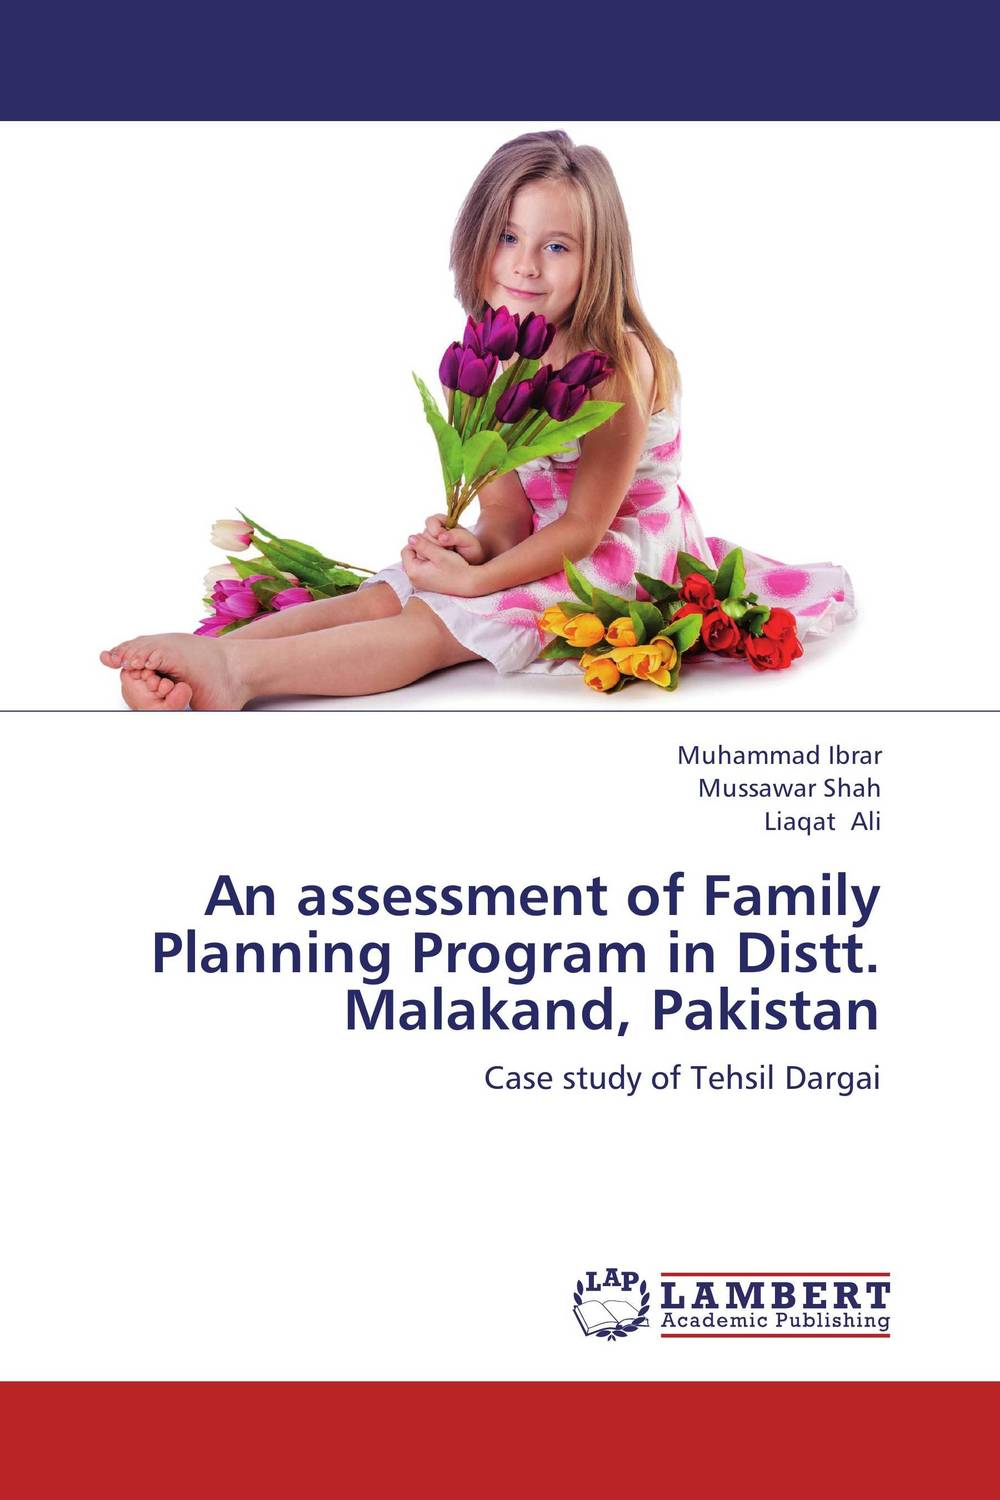 An assessment of Family Planning Program in Distt. Malakand, Pakistan statistical techniques for family planning measures